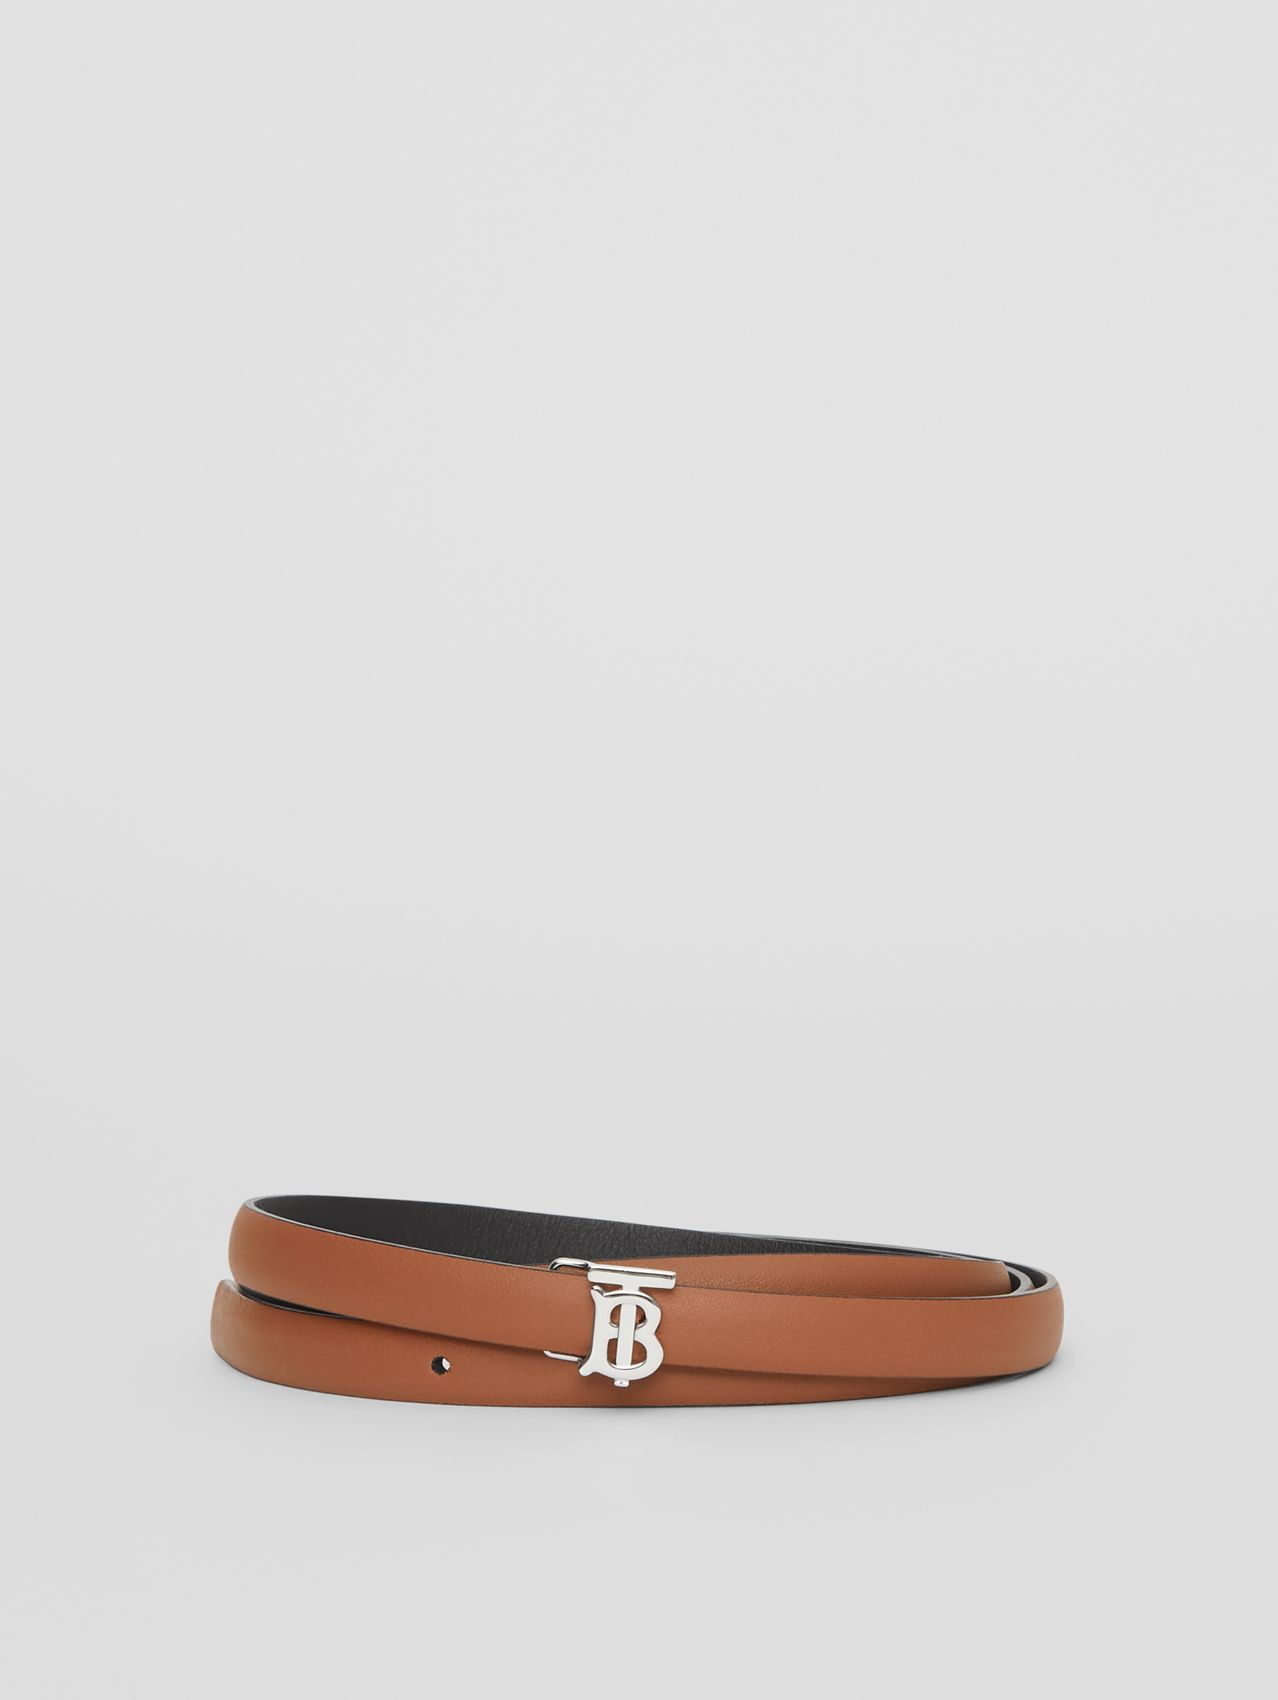 Reversible Monogram Motif Leather Wrap Belt in Malt Brown/black